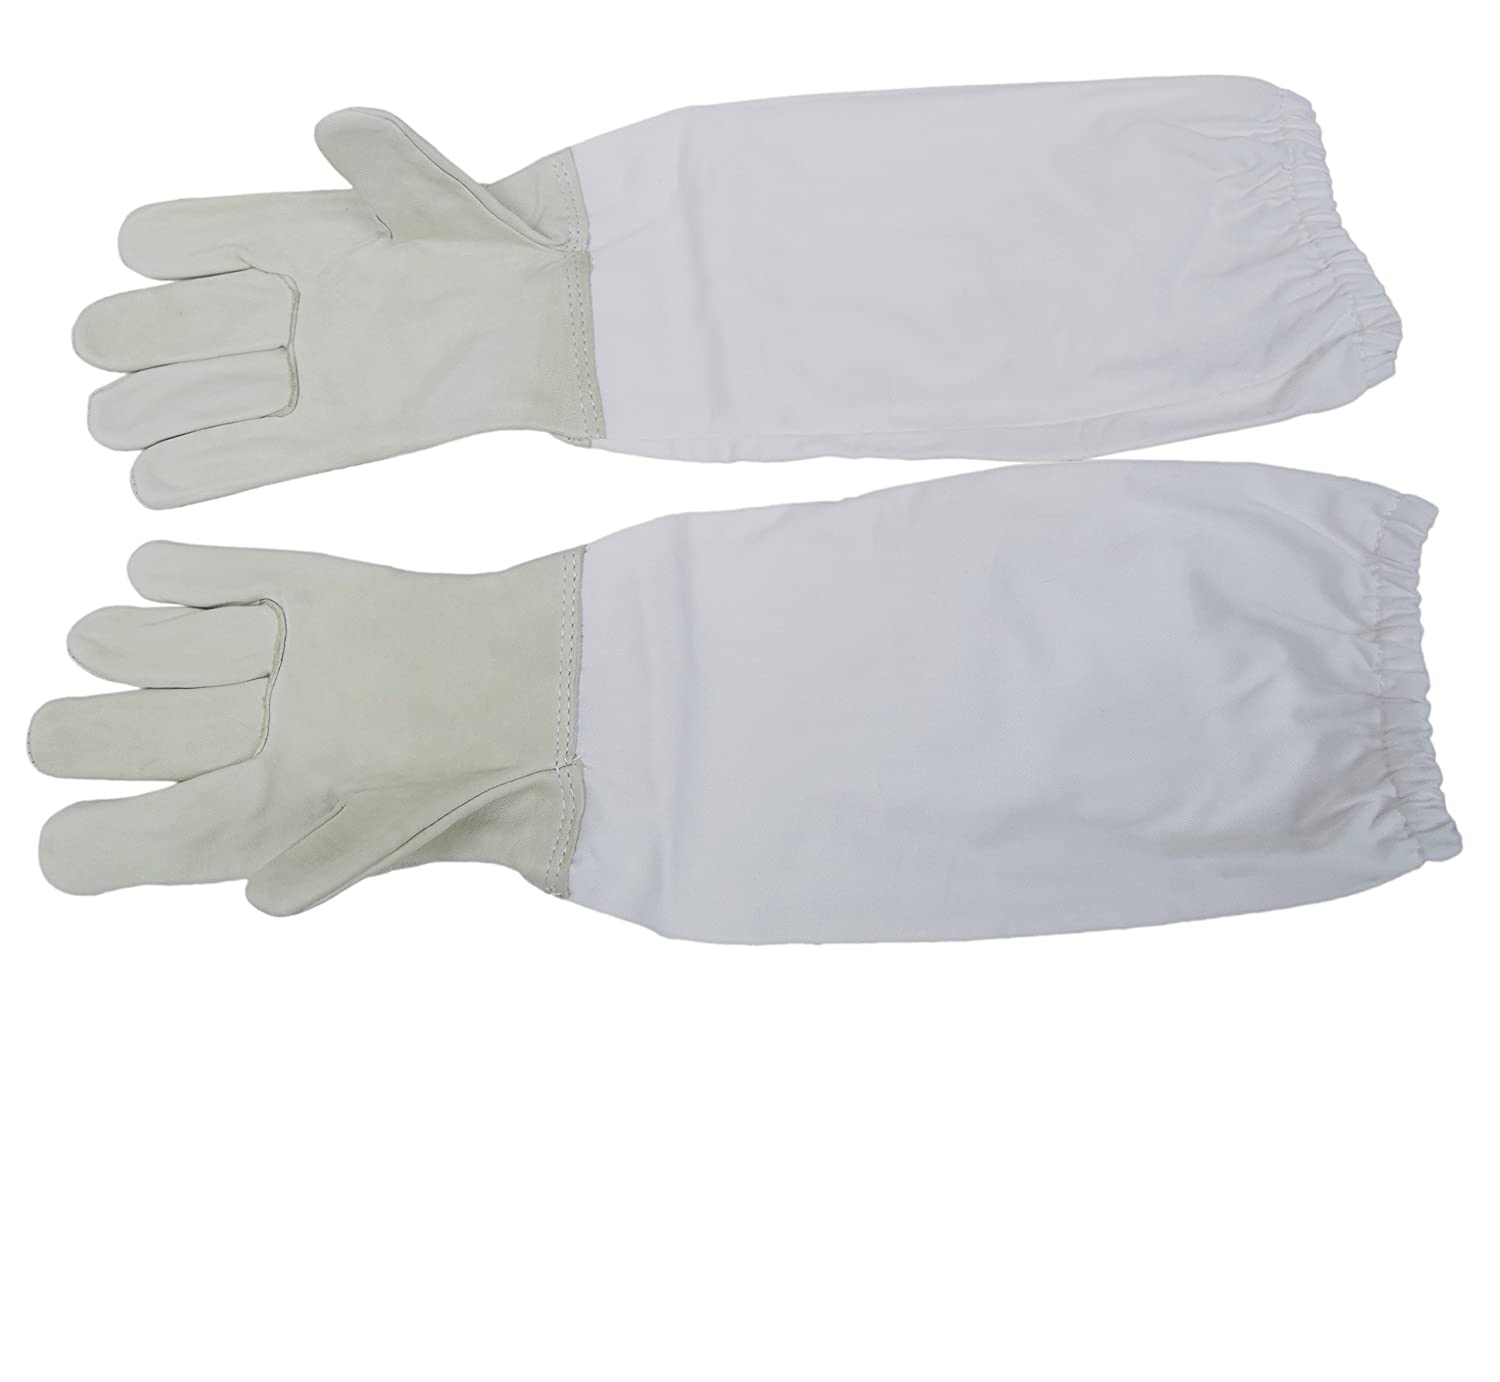 Large (L) Beekeeping Gloves, Leather Bee Keeping with sleeves by VIVO (BEE-V103L)